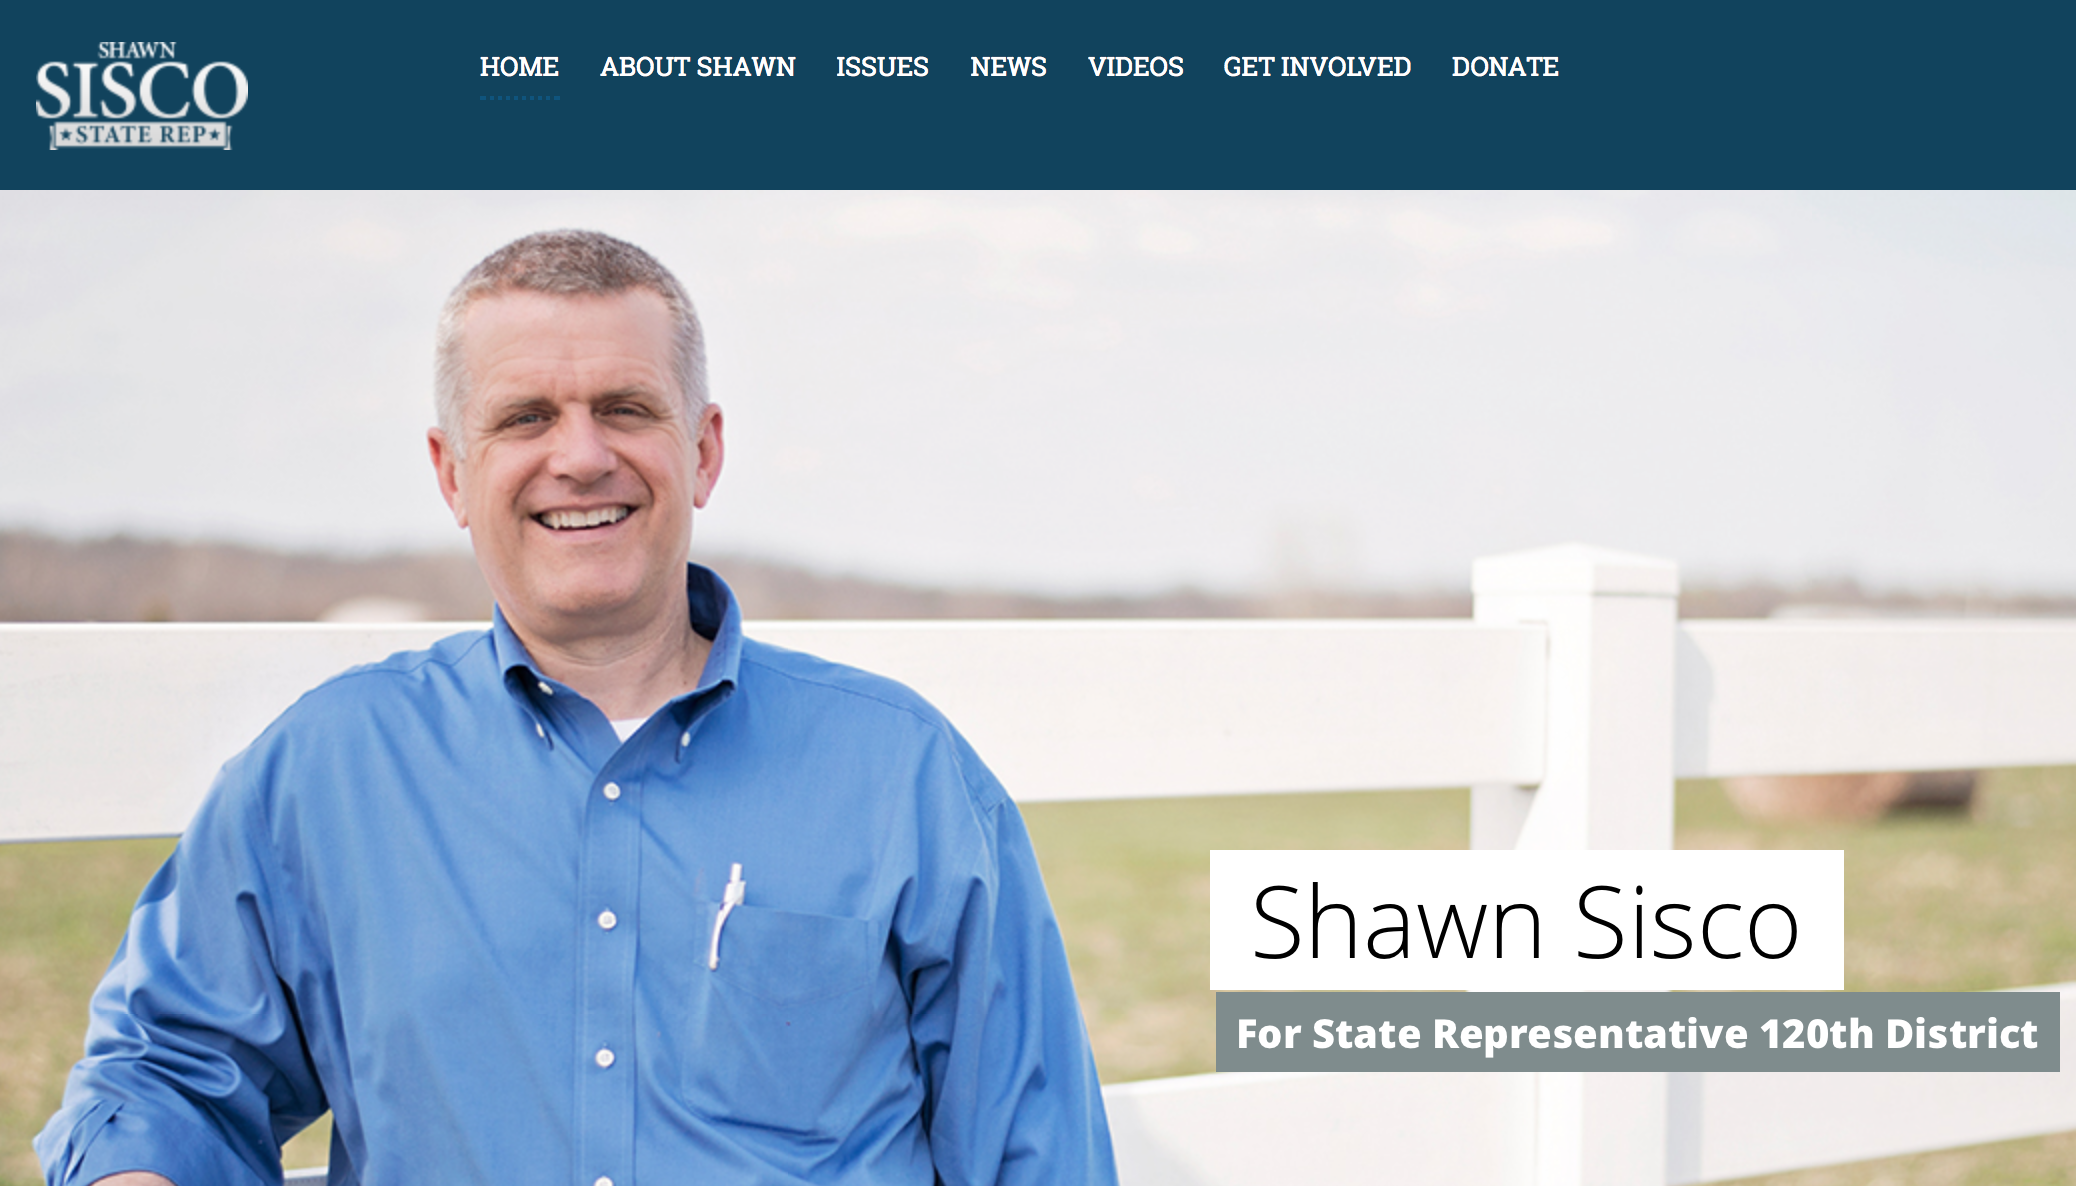 Shawn Sisco Webpage Shot